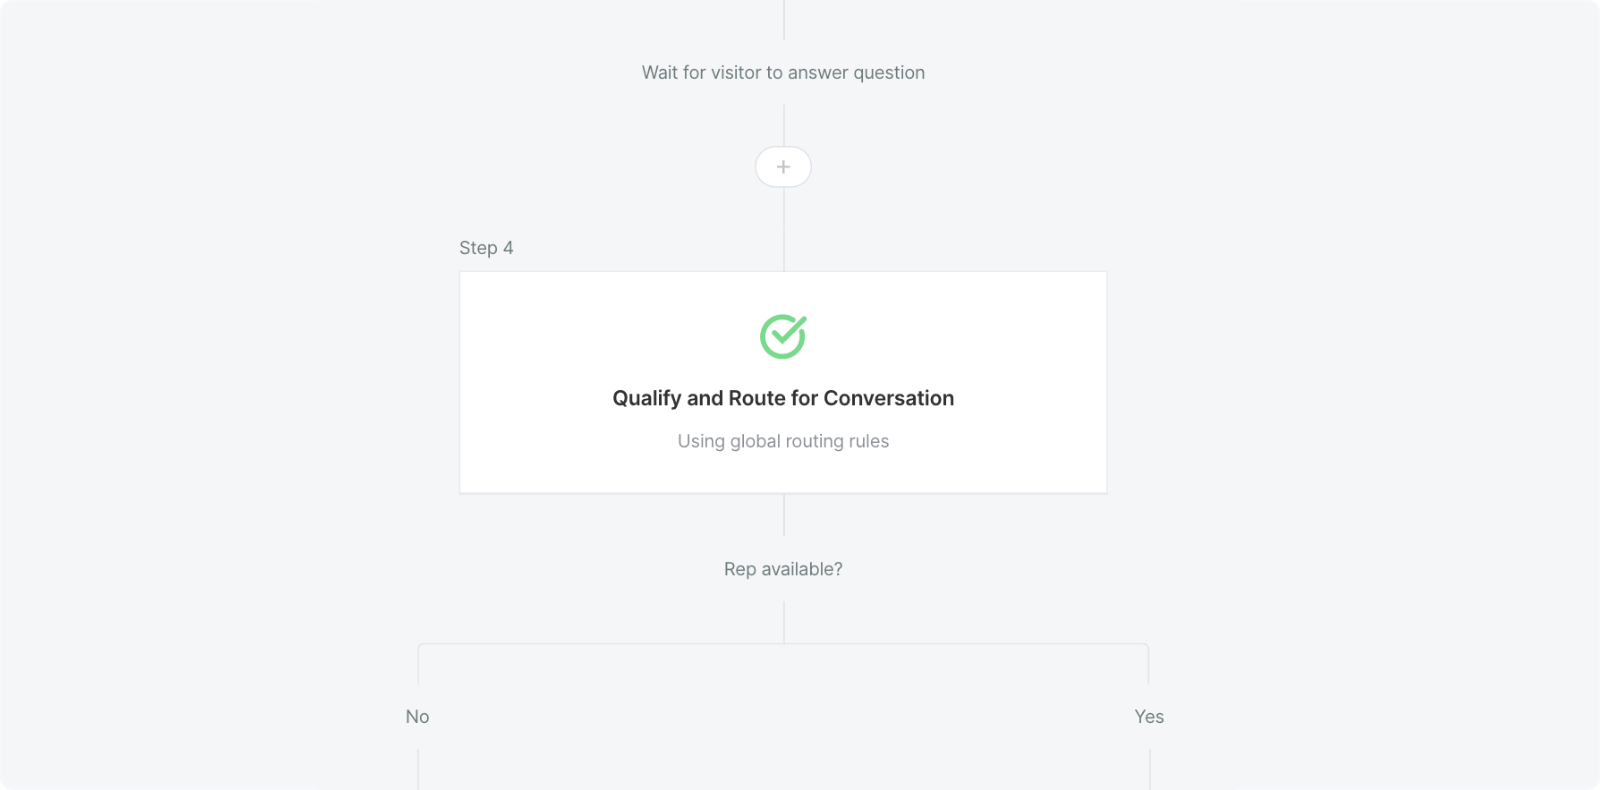 AppExchange Chat: Qualify and Route step